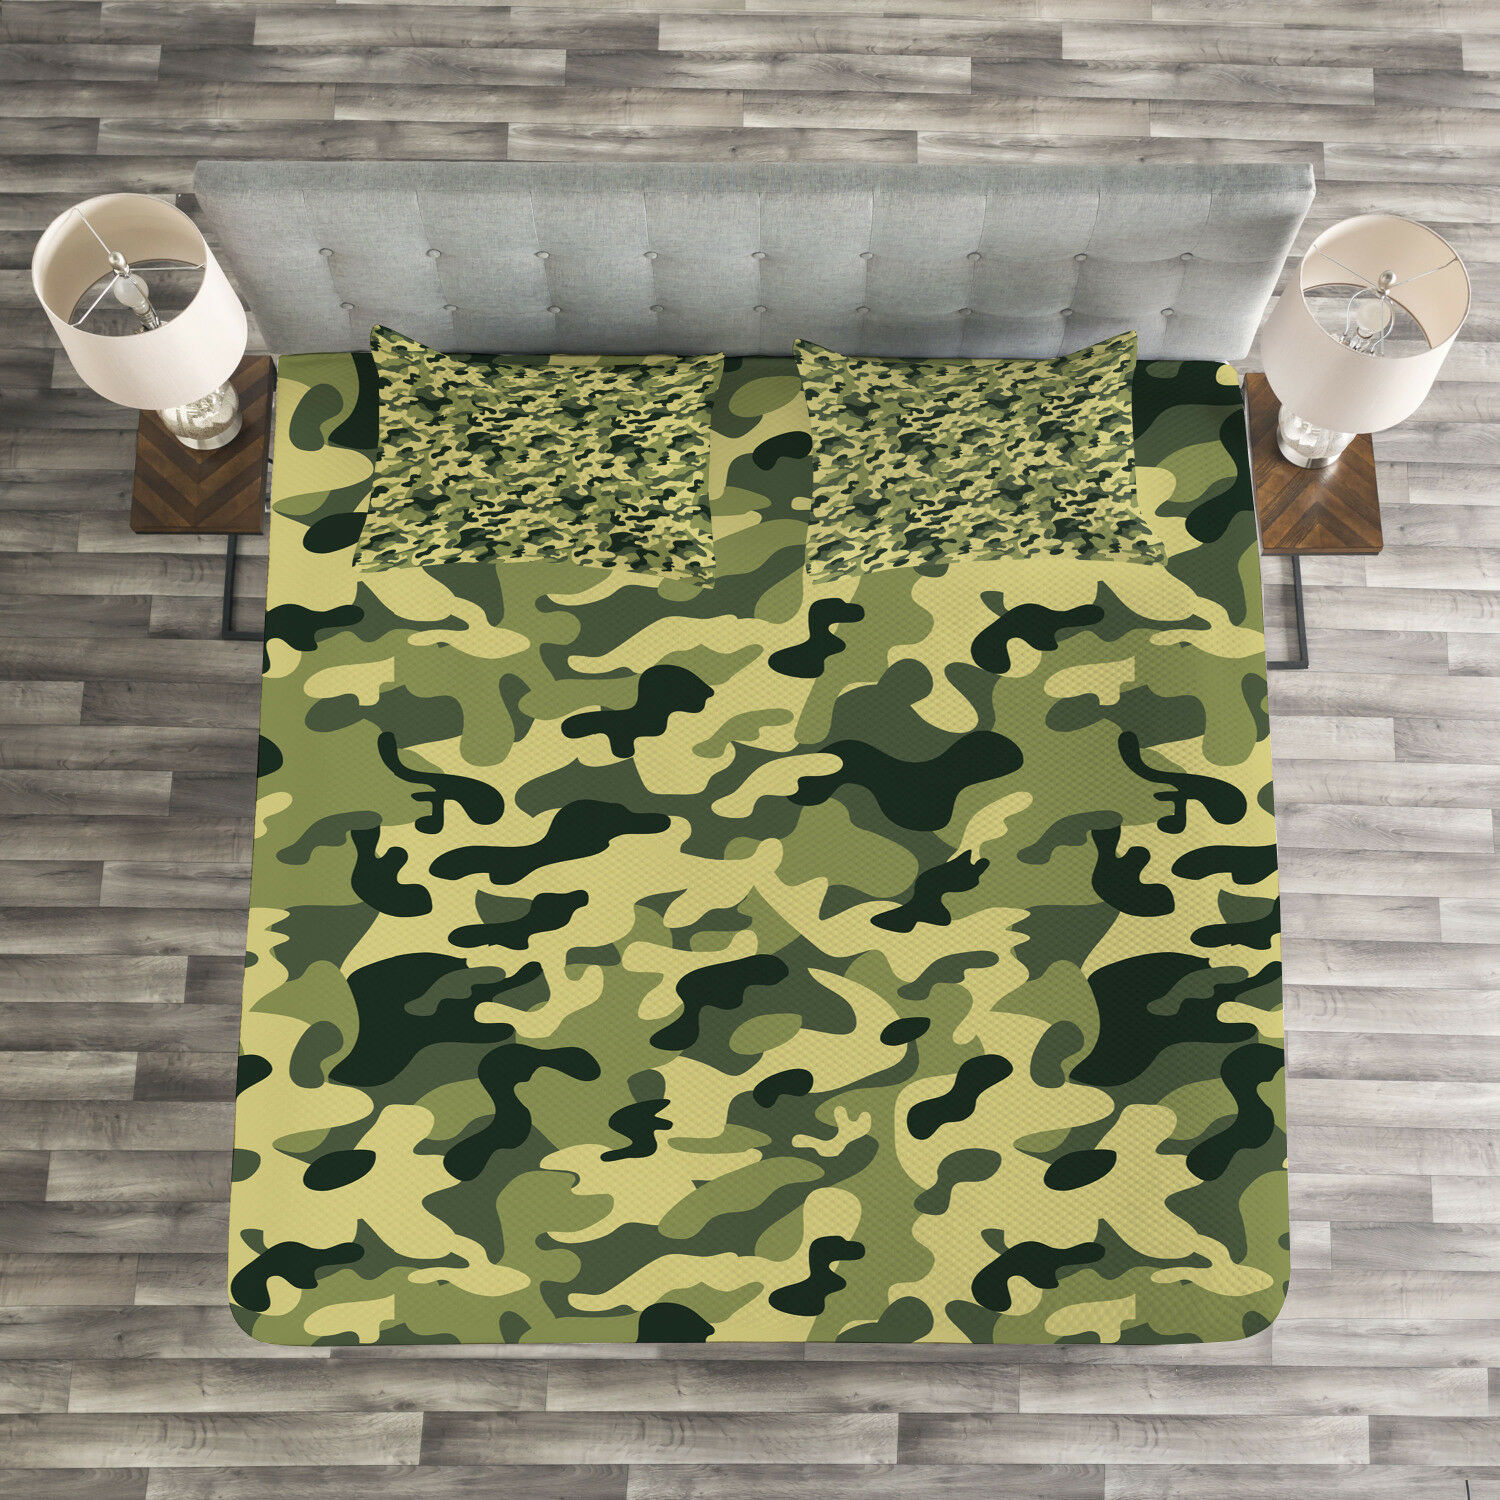 Camouflage Quilted Bedspread & Pillow Shams Set, Pale Clothing Motif Print